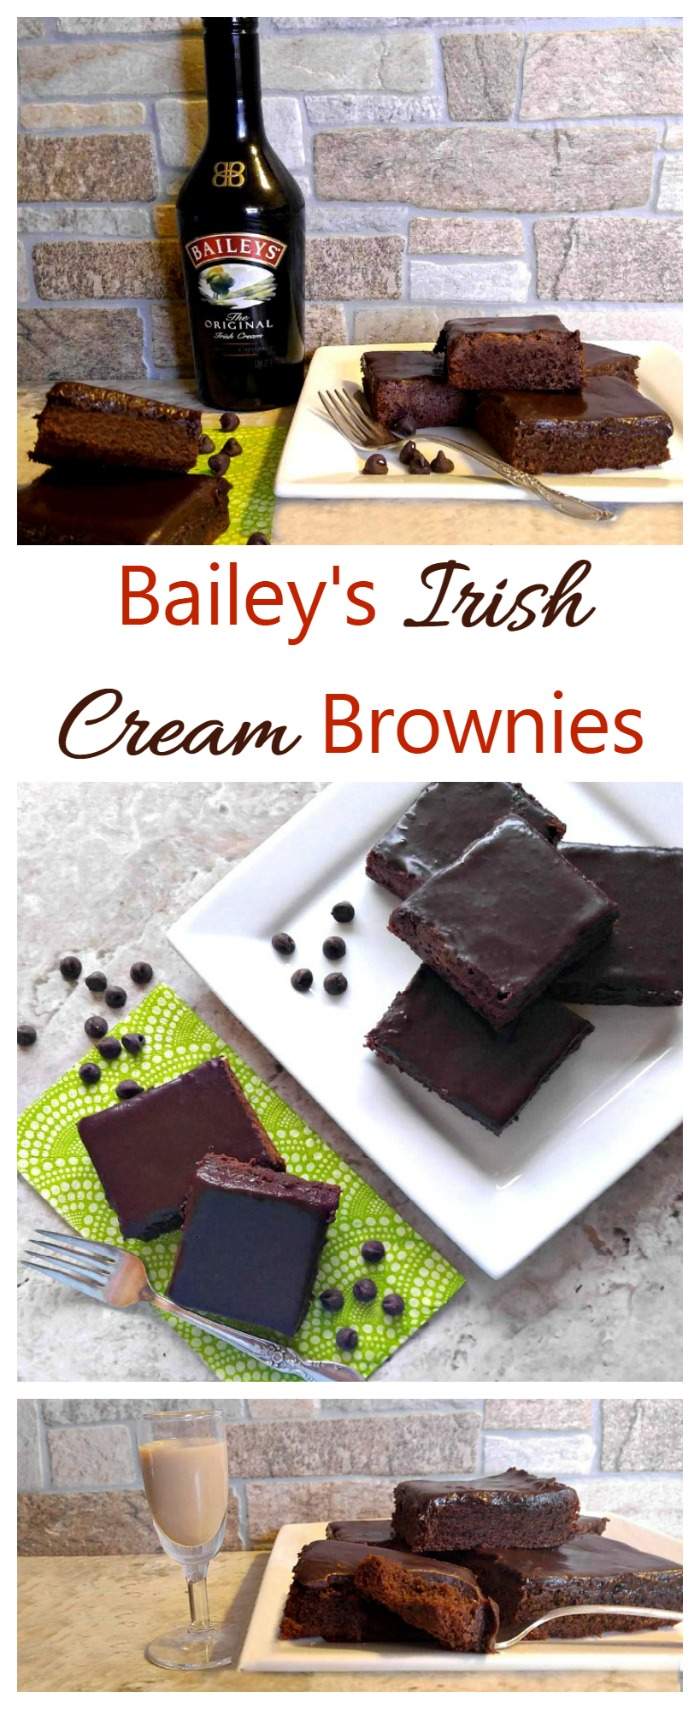 These Bailey's Irish Cream Brownie are rich, decadent and moist, with the most amazing ganache ever. Both the brownies and the ganache are flavored with Bailey's so this is a dessert for the grown ups.